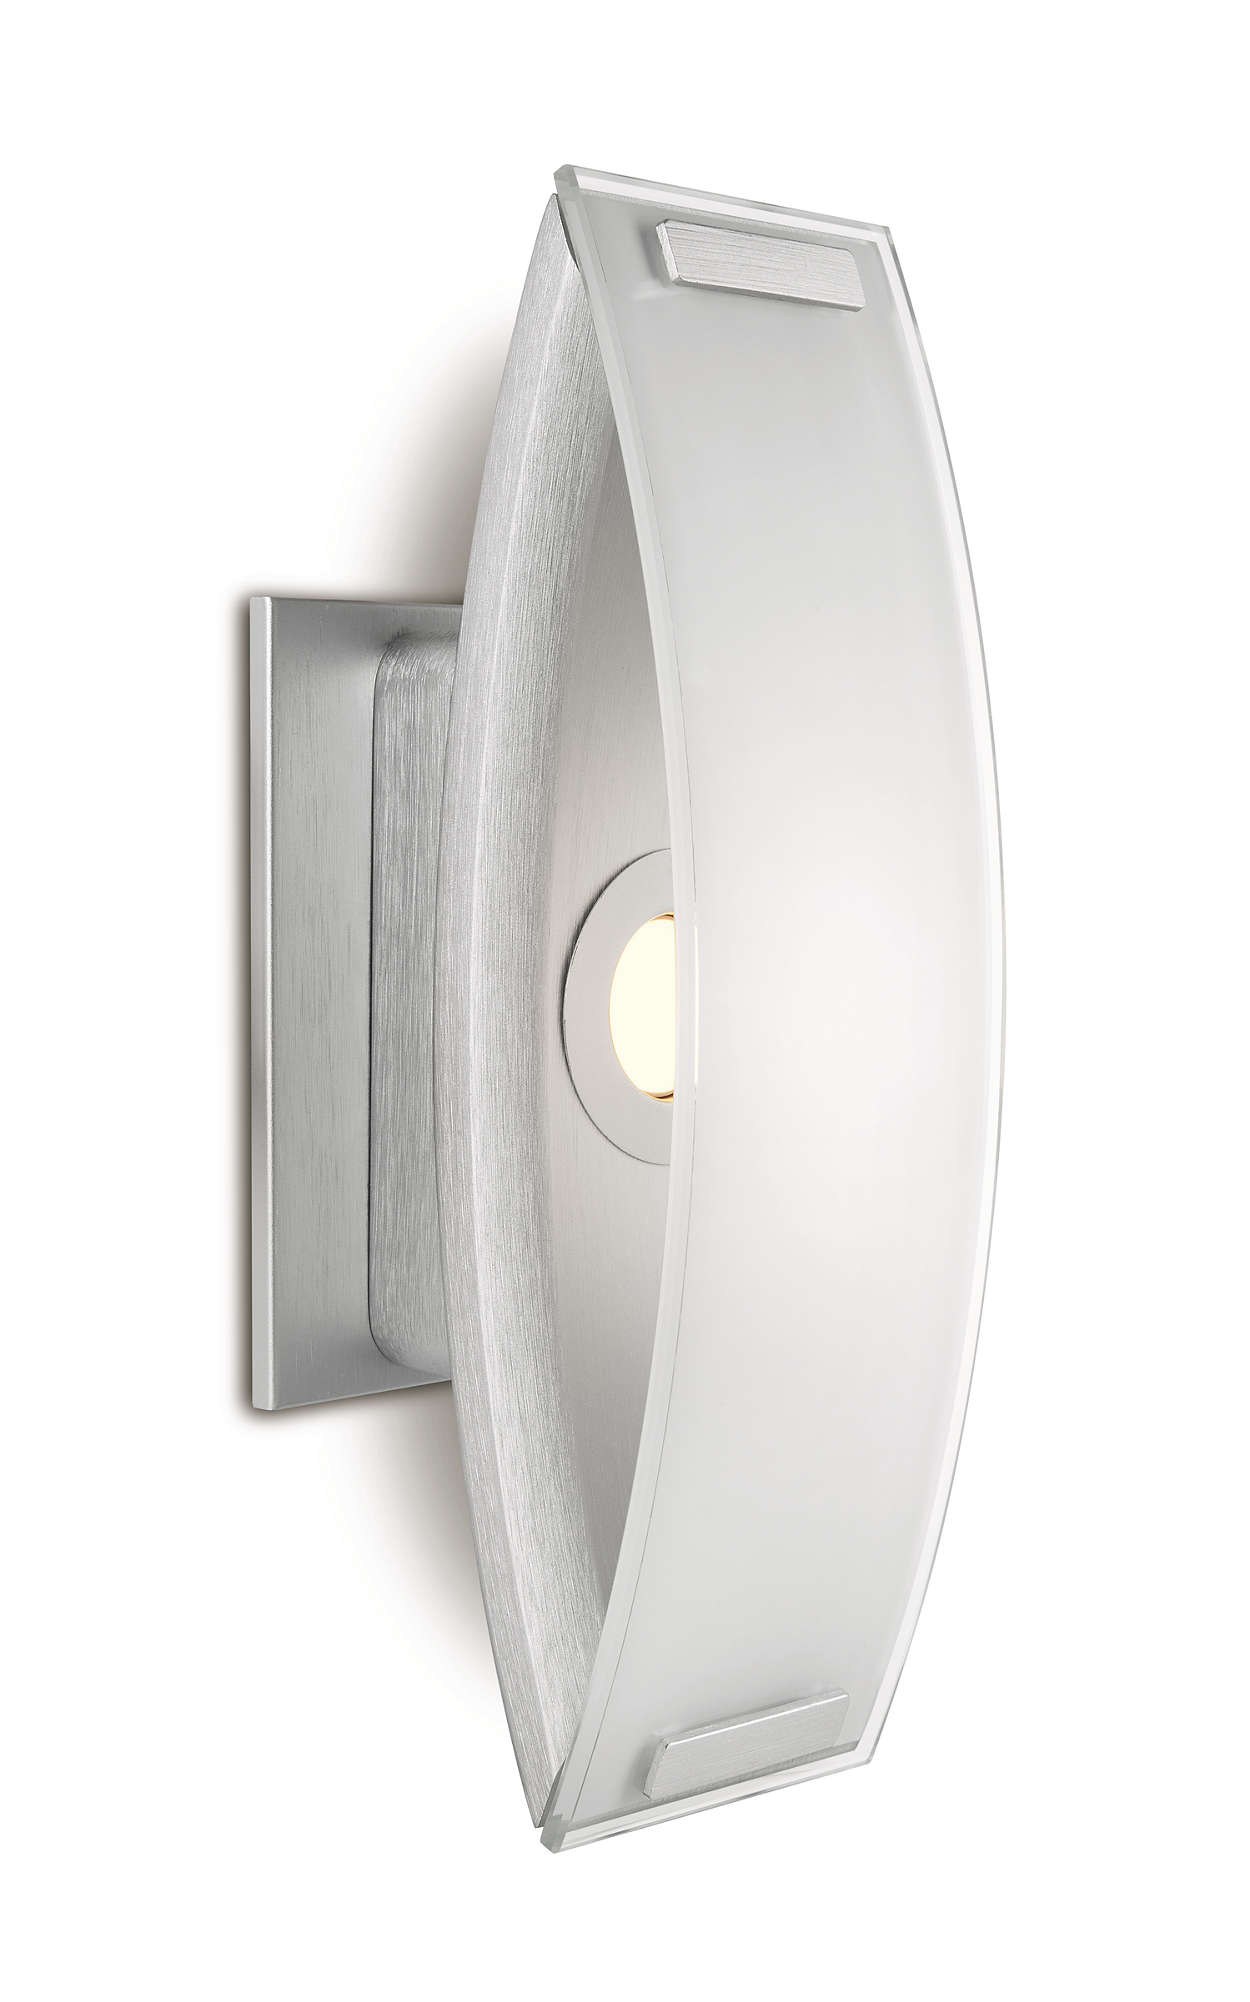 Ledino Ponte wall light